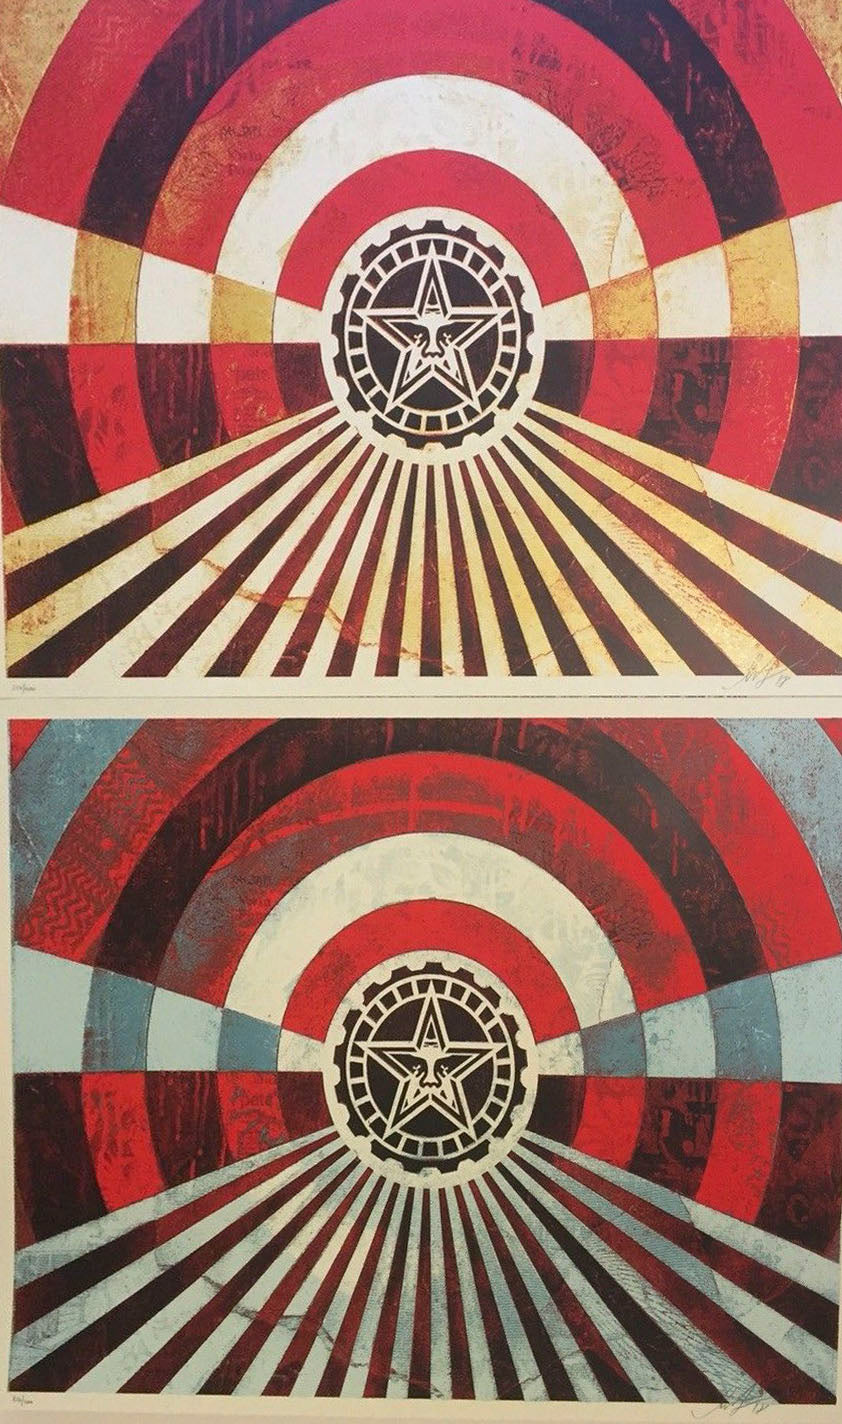 Tunnel Vision Gold/Blue Set /400  by Frank Shepard Fairey (Obey)